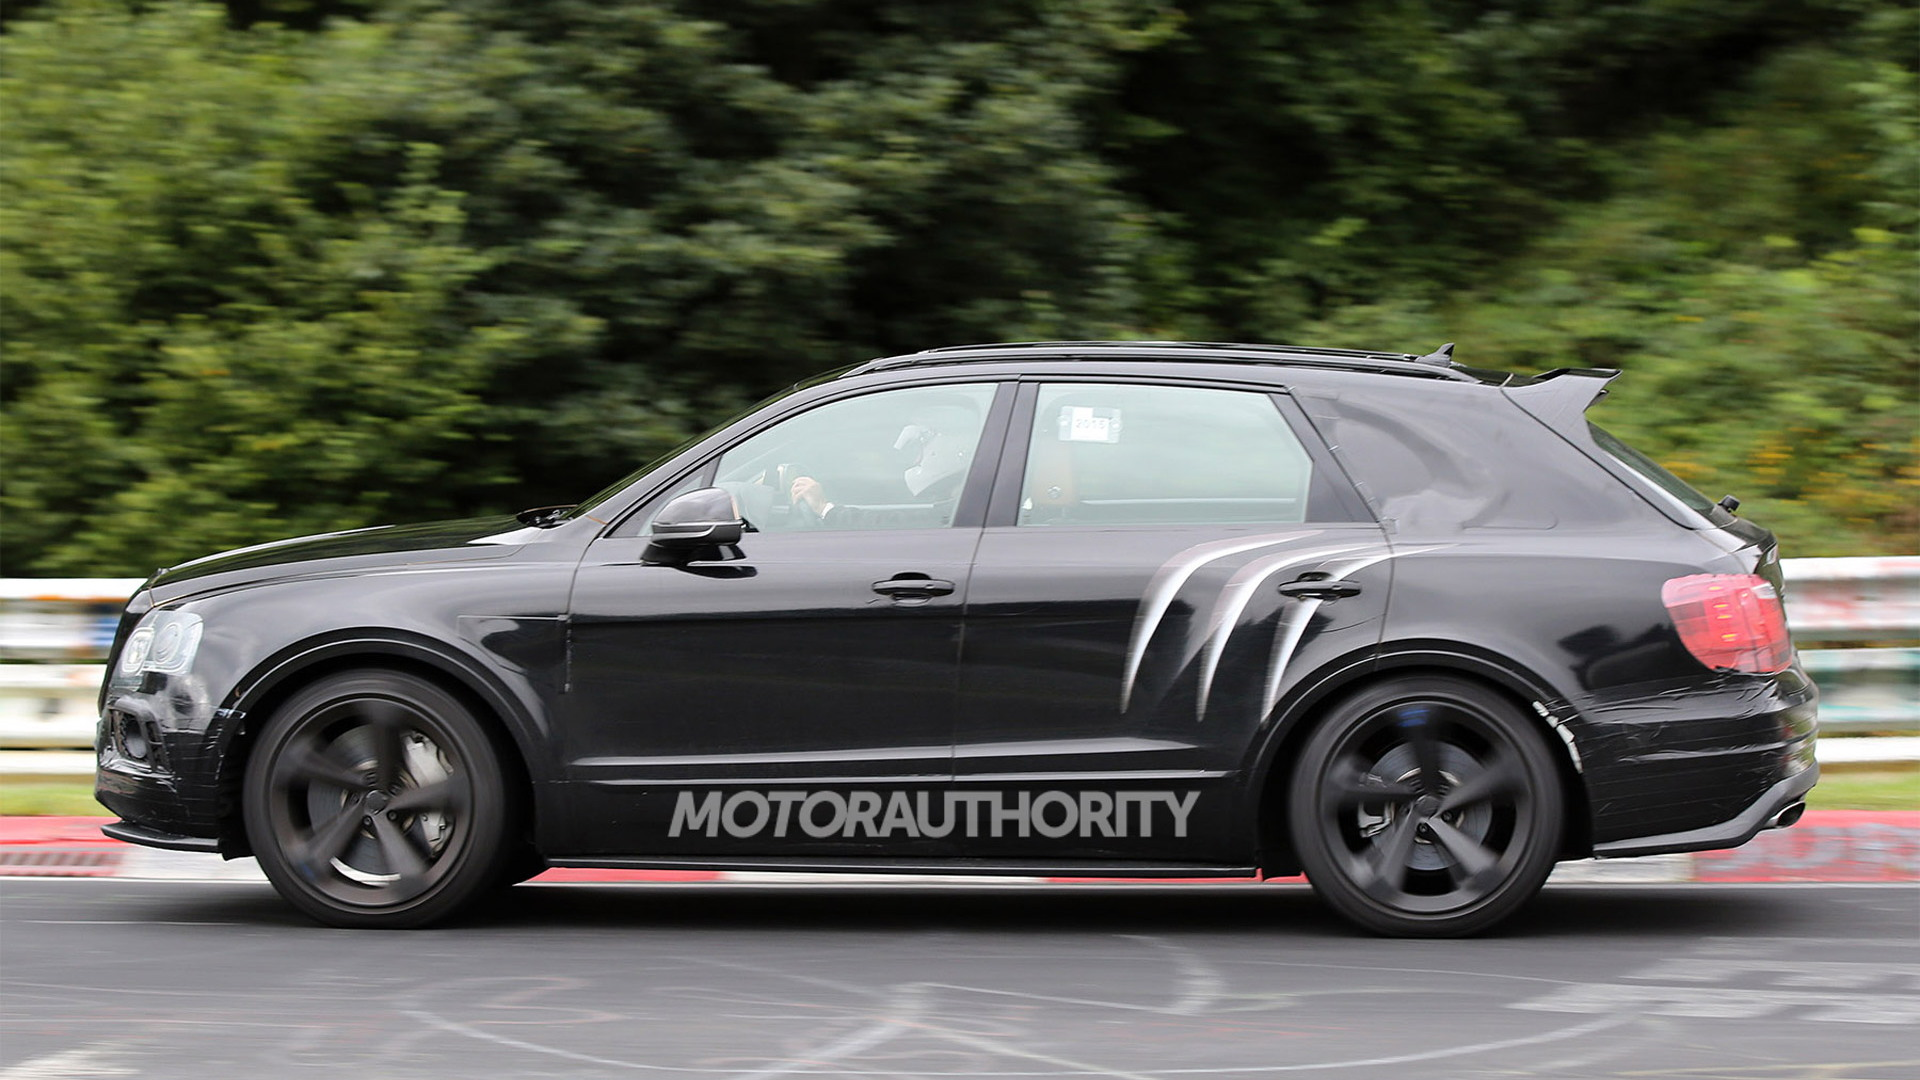 2020 Bentley Bentayga Speed spy shots - Image via S. Baldauf/SB-Medien